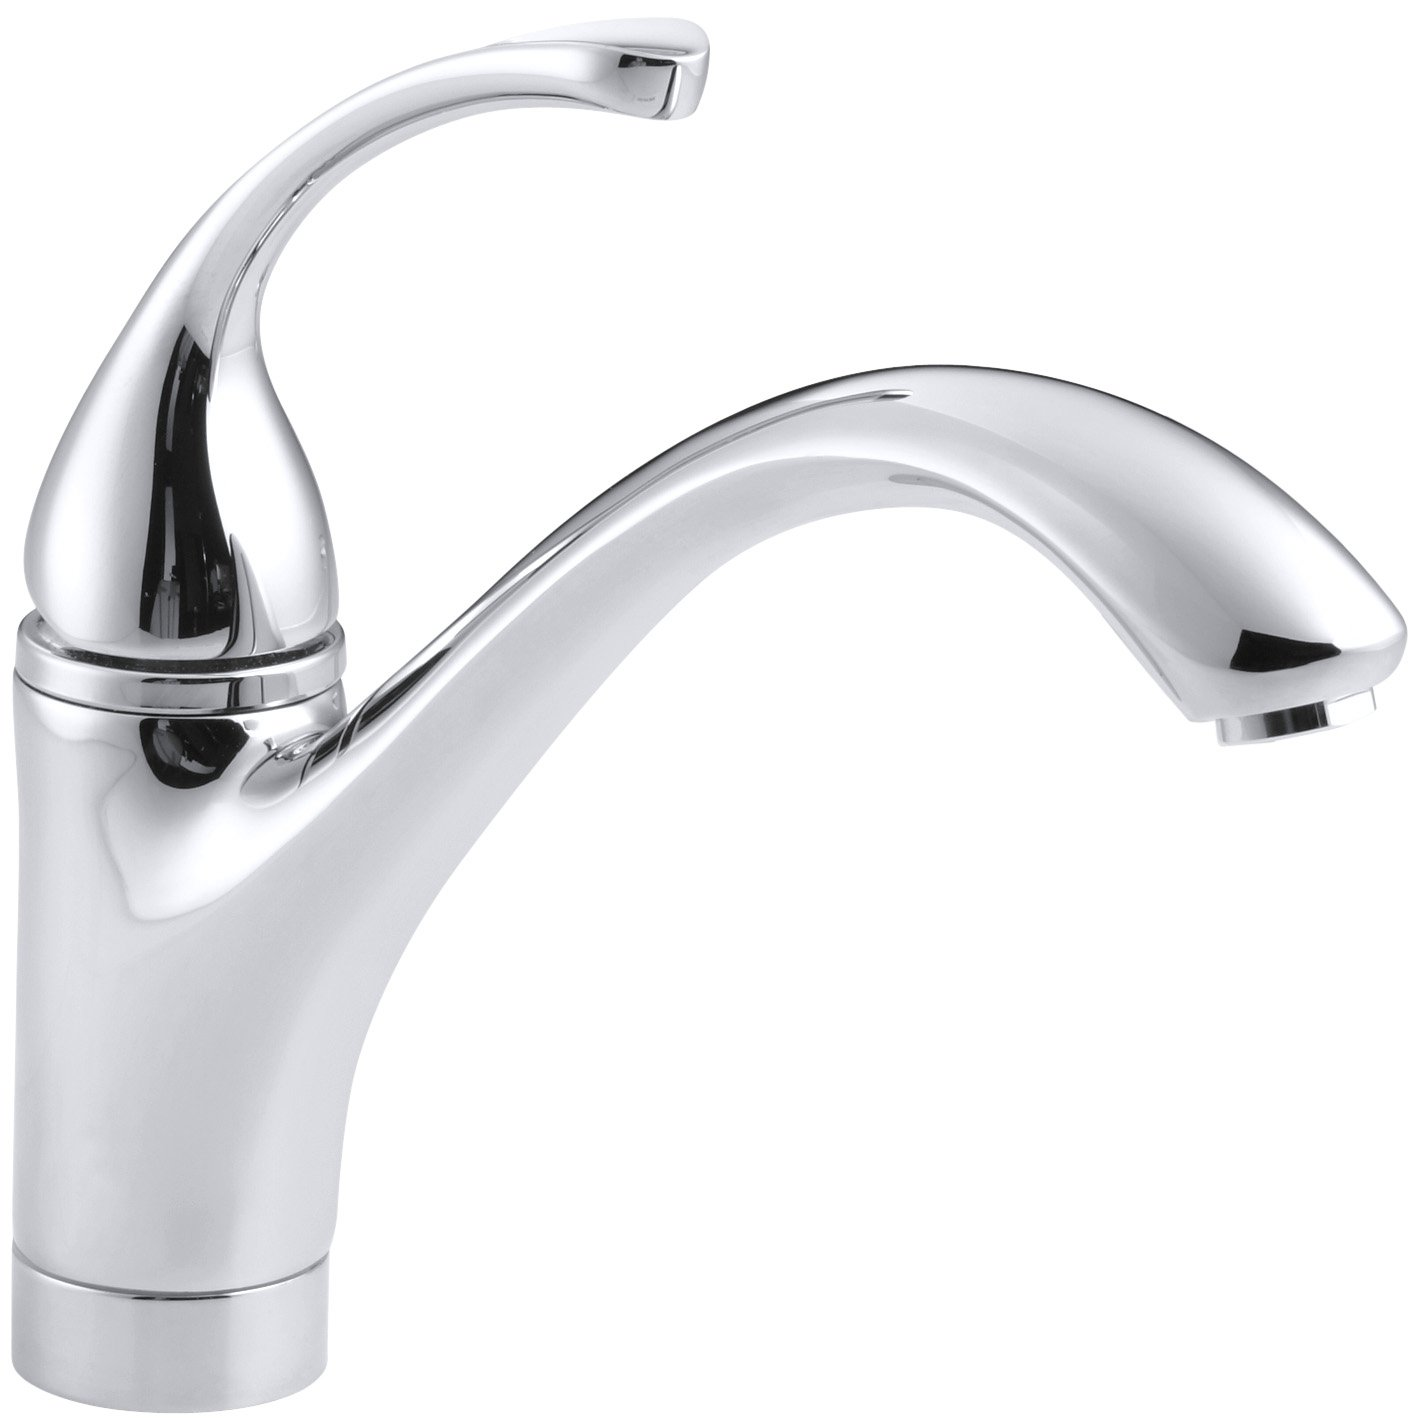 Exceptional KOHLER K 10415 CP Forte Single Control Kitchen Sink Faucet With Lever  Handle, Polished Chrome   Touch On Kitchen Sink Faucets   Amazon.com